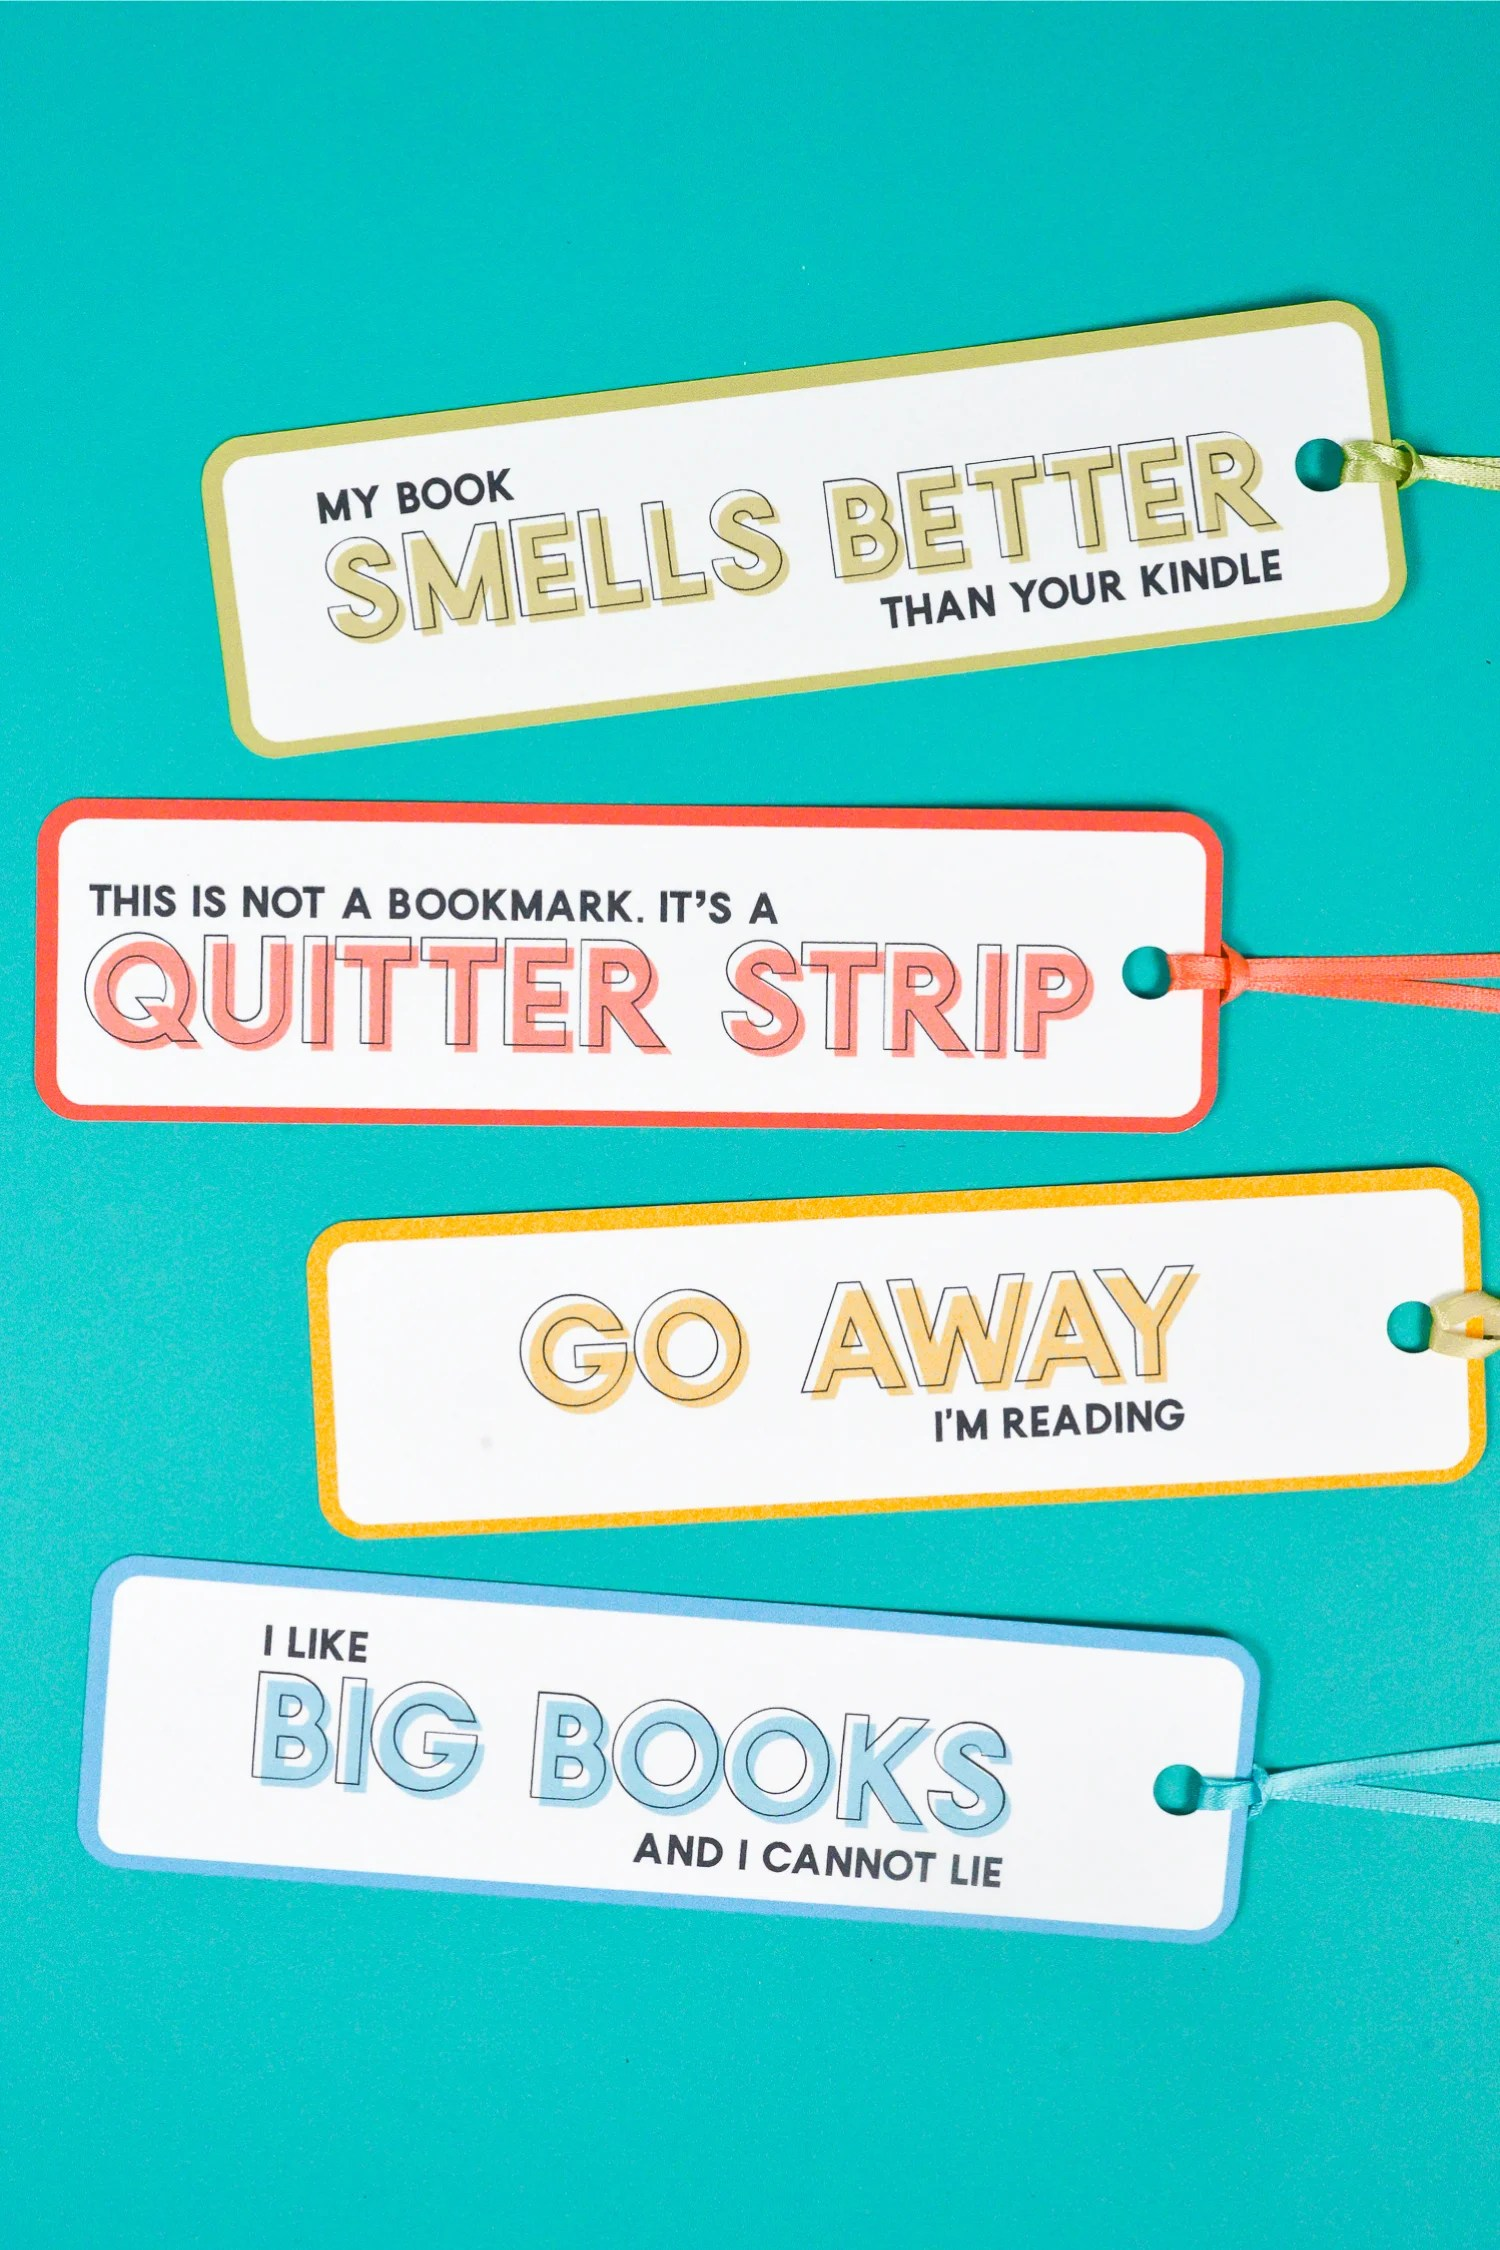 photograph regarding Bookmarks Printable identified as Amusing Bookmarks - a Totally free Printable - Hey, Makes it possible for Create Things